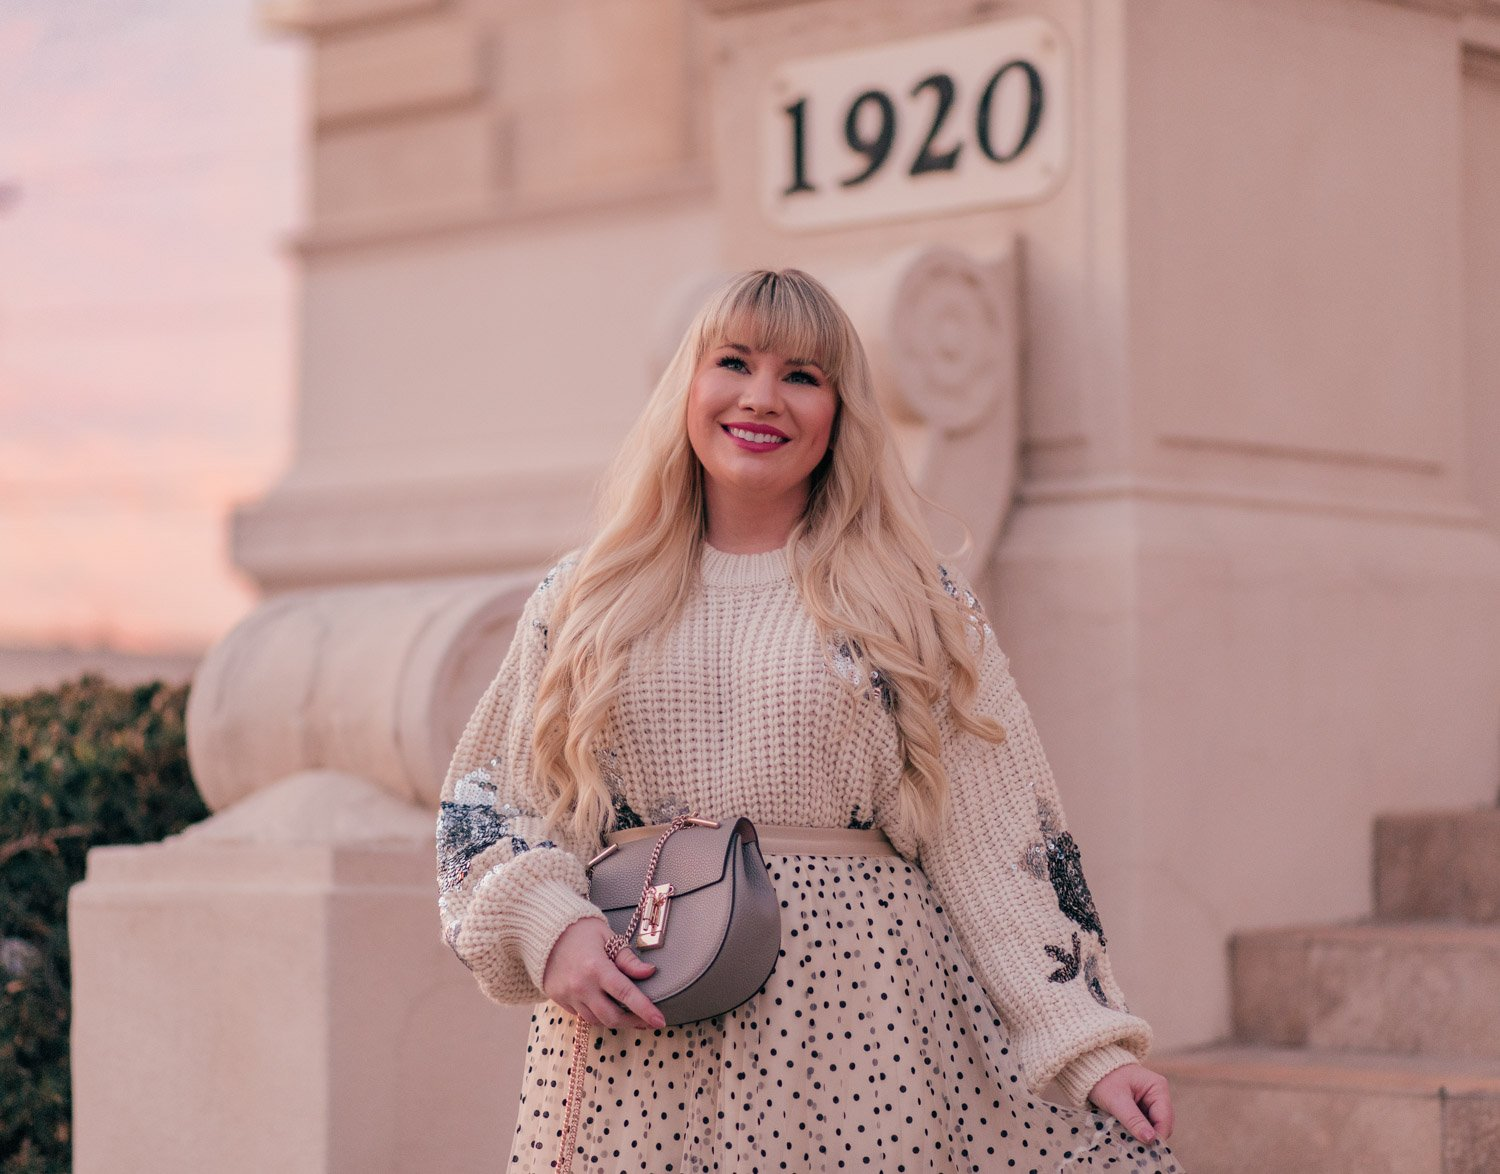 Feminine Fashion Blogger Elizabeth Hugen shares two ways to wear a polka dot tulle skirt outfit including with an oversized sweater